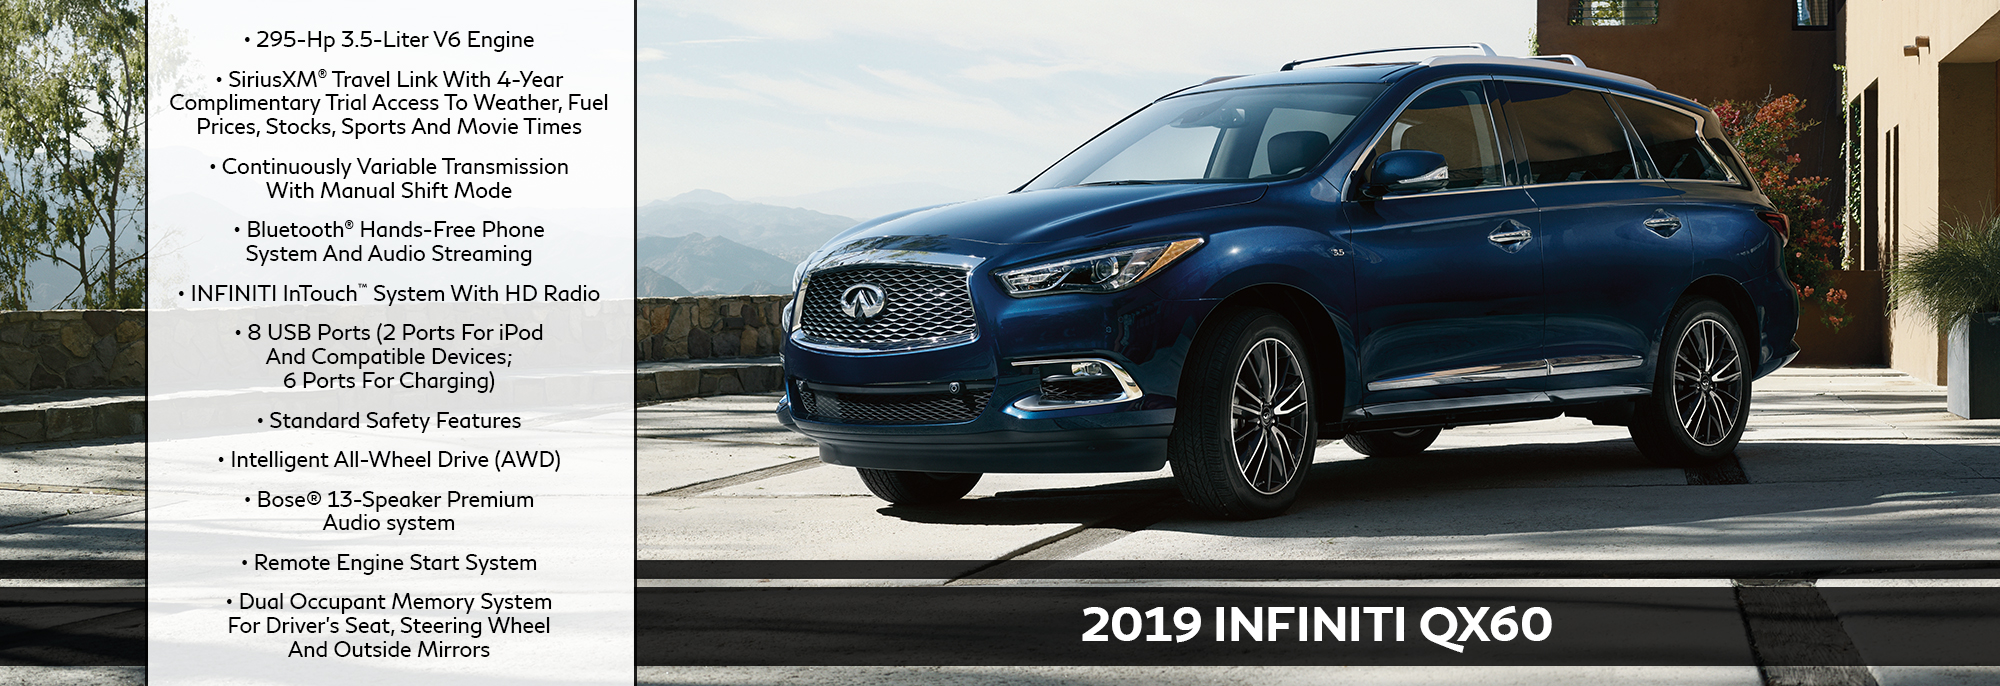 New 2019 INFINITI QX60 Offer